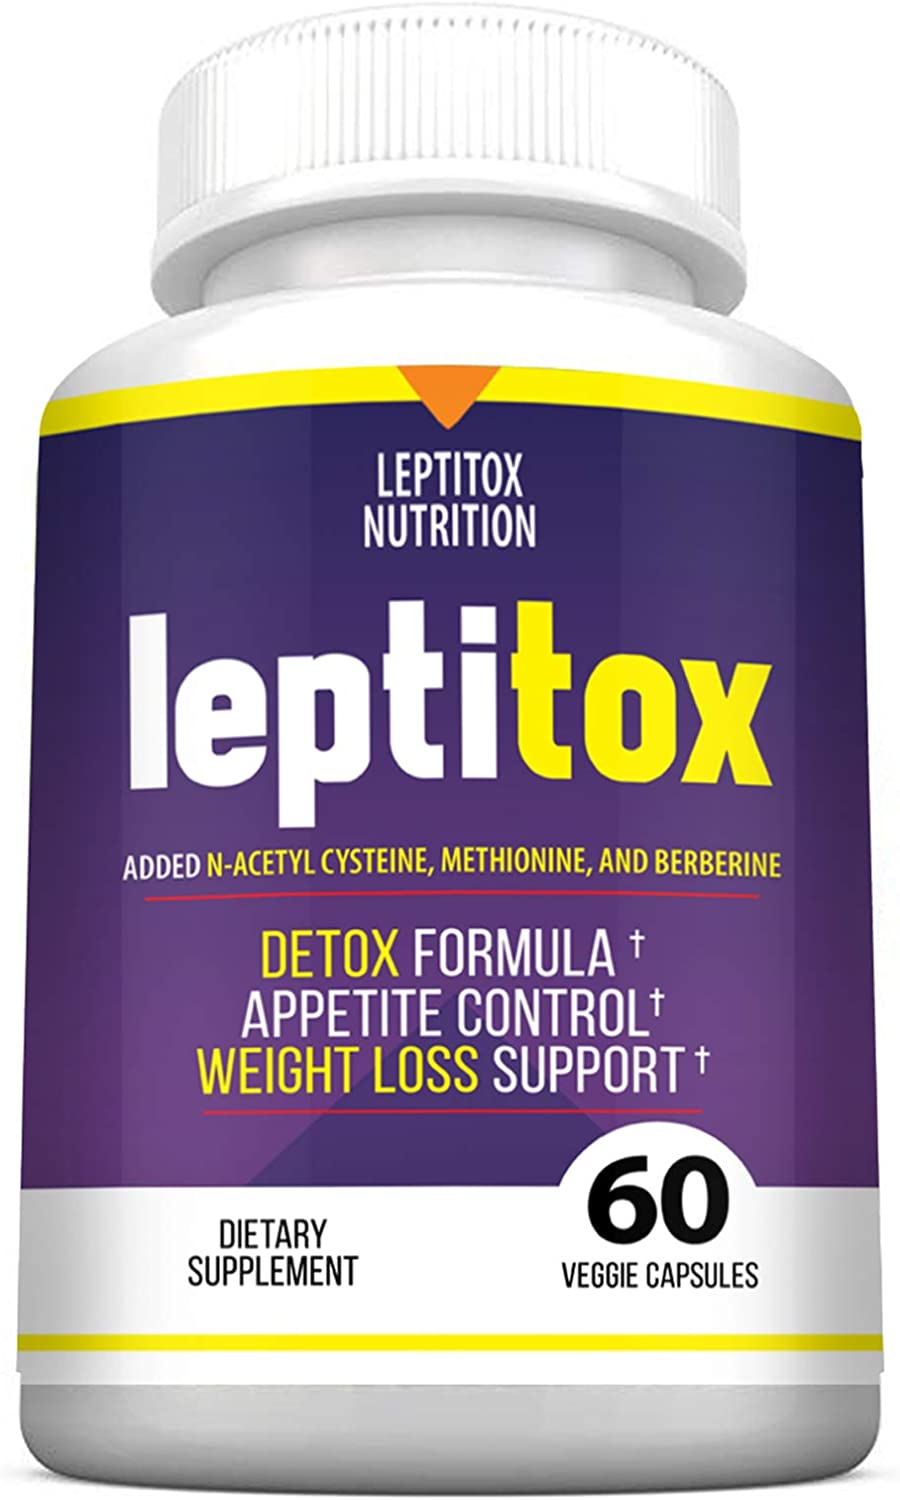 Leptitox Weight Loss  Deals Buy One Get One Free June